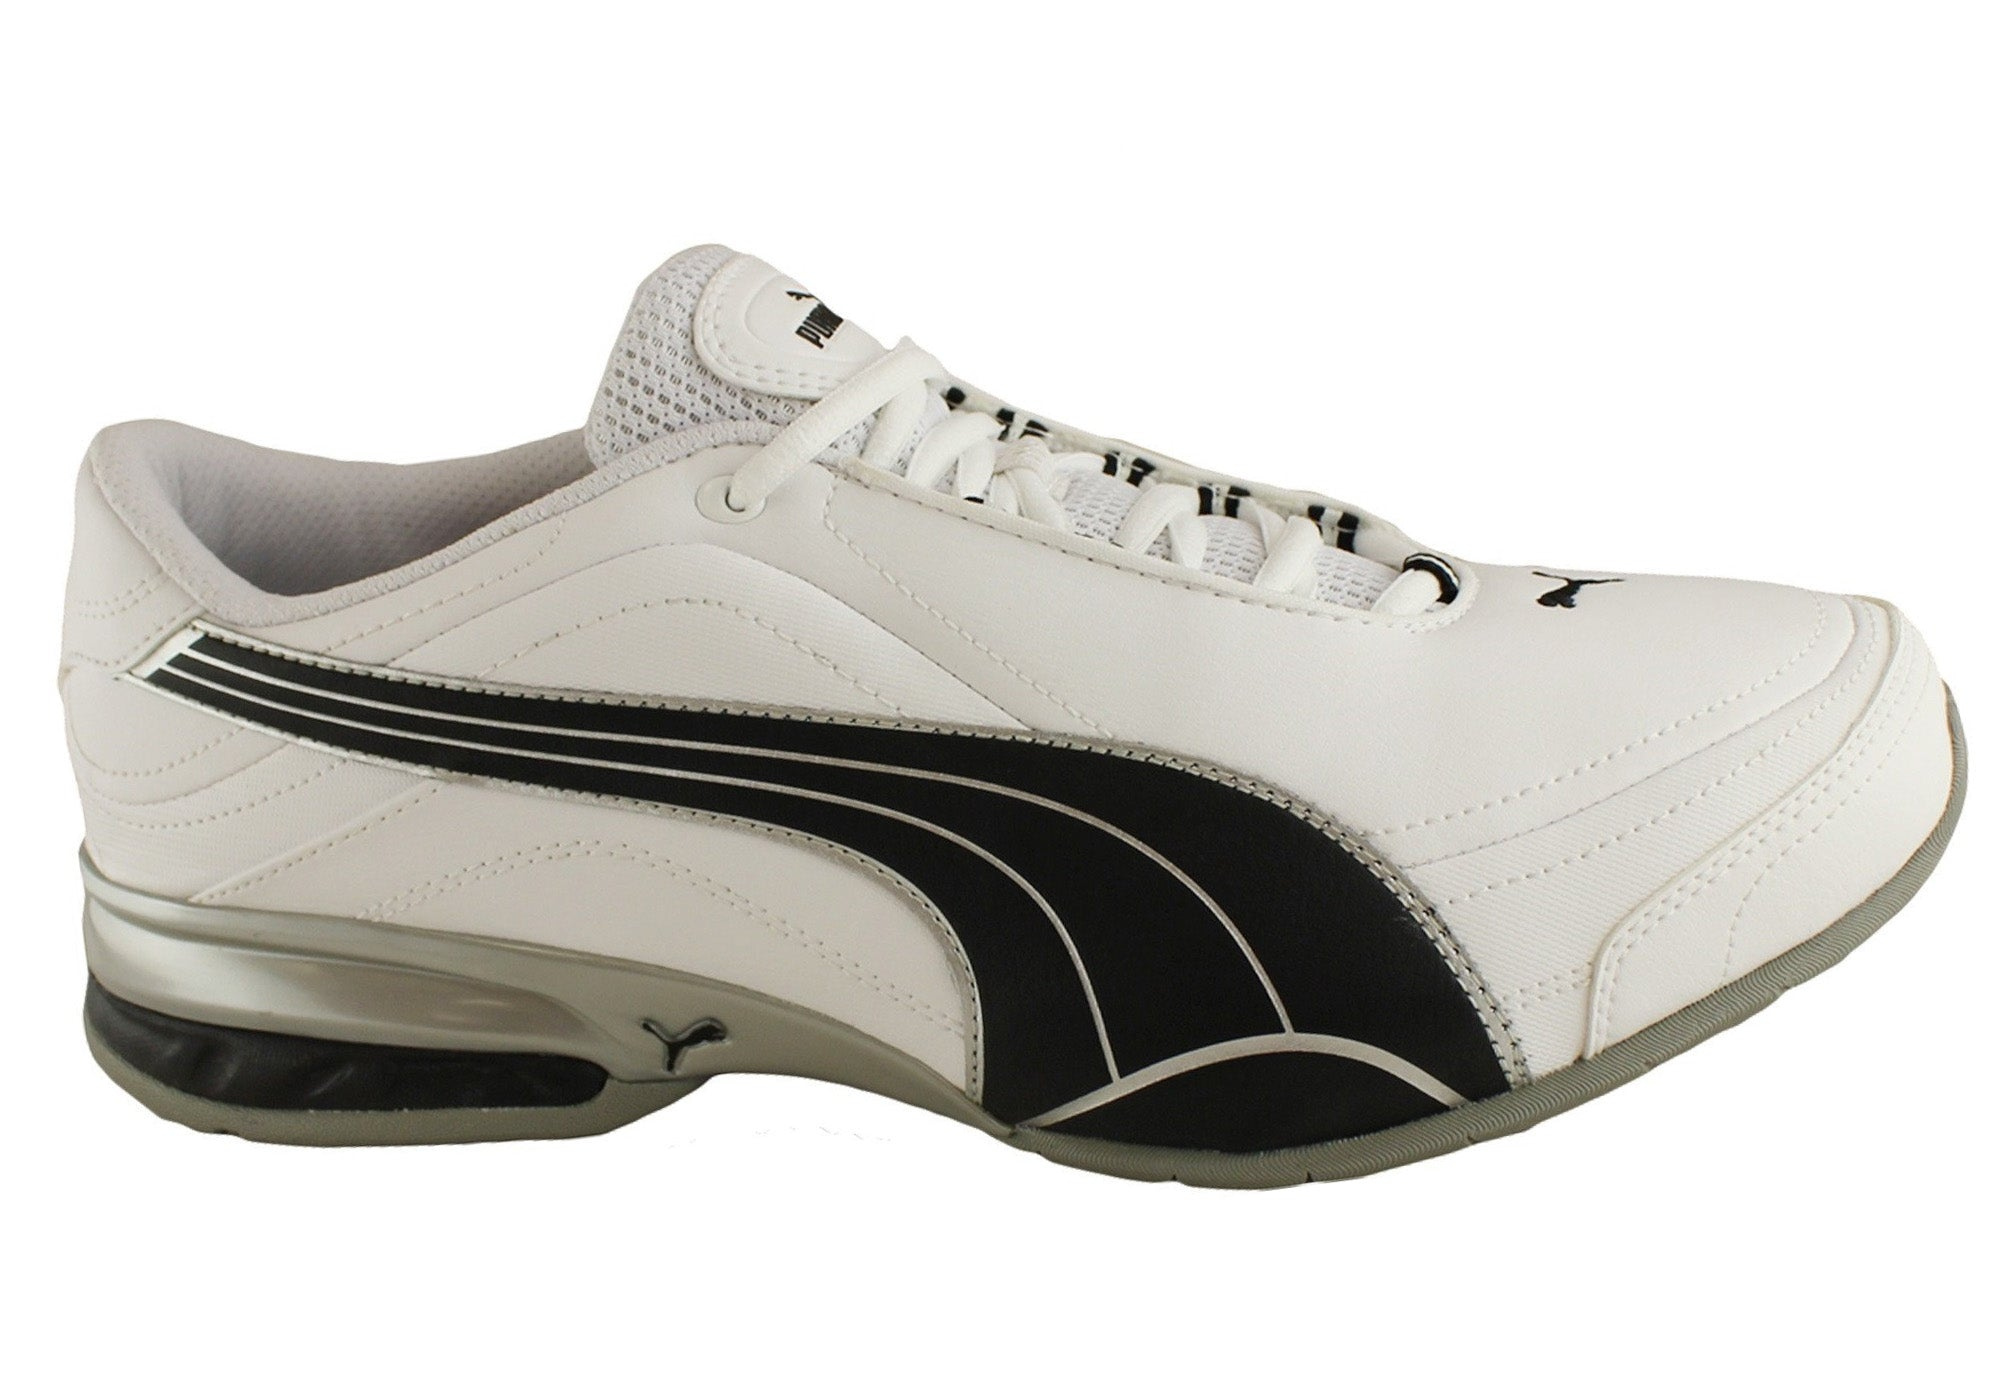 Details about NEW PUMA TAZON 4 MENS LACE UP SPORTS SHOES